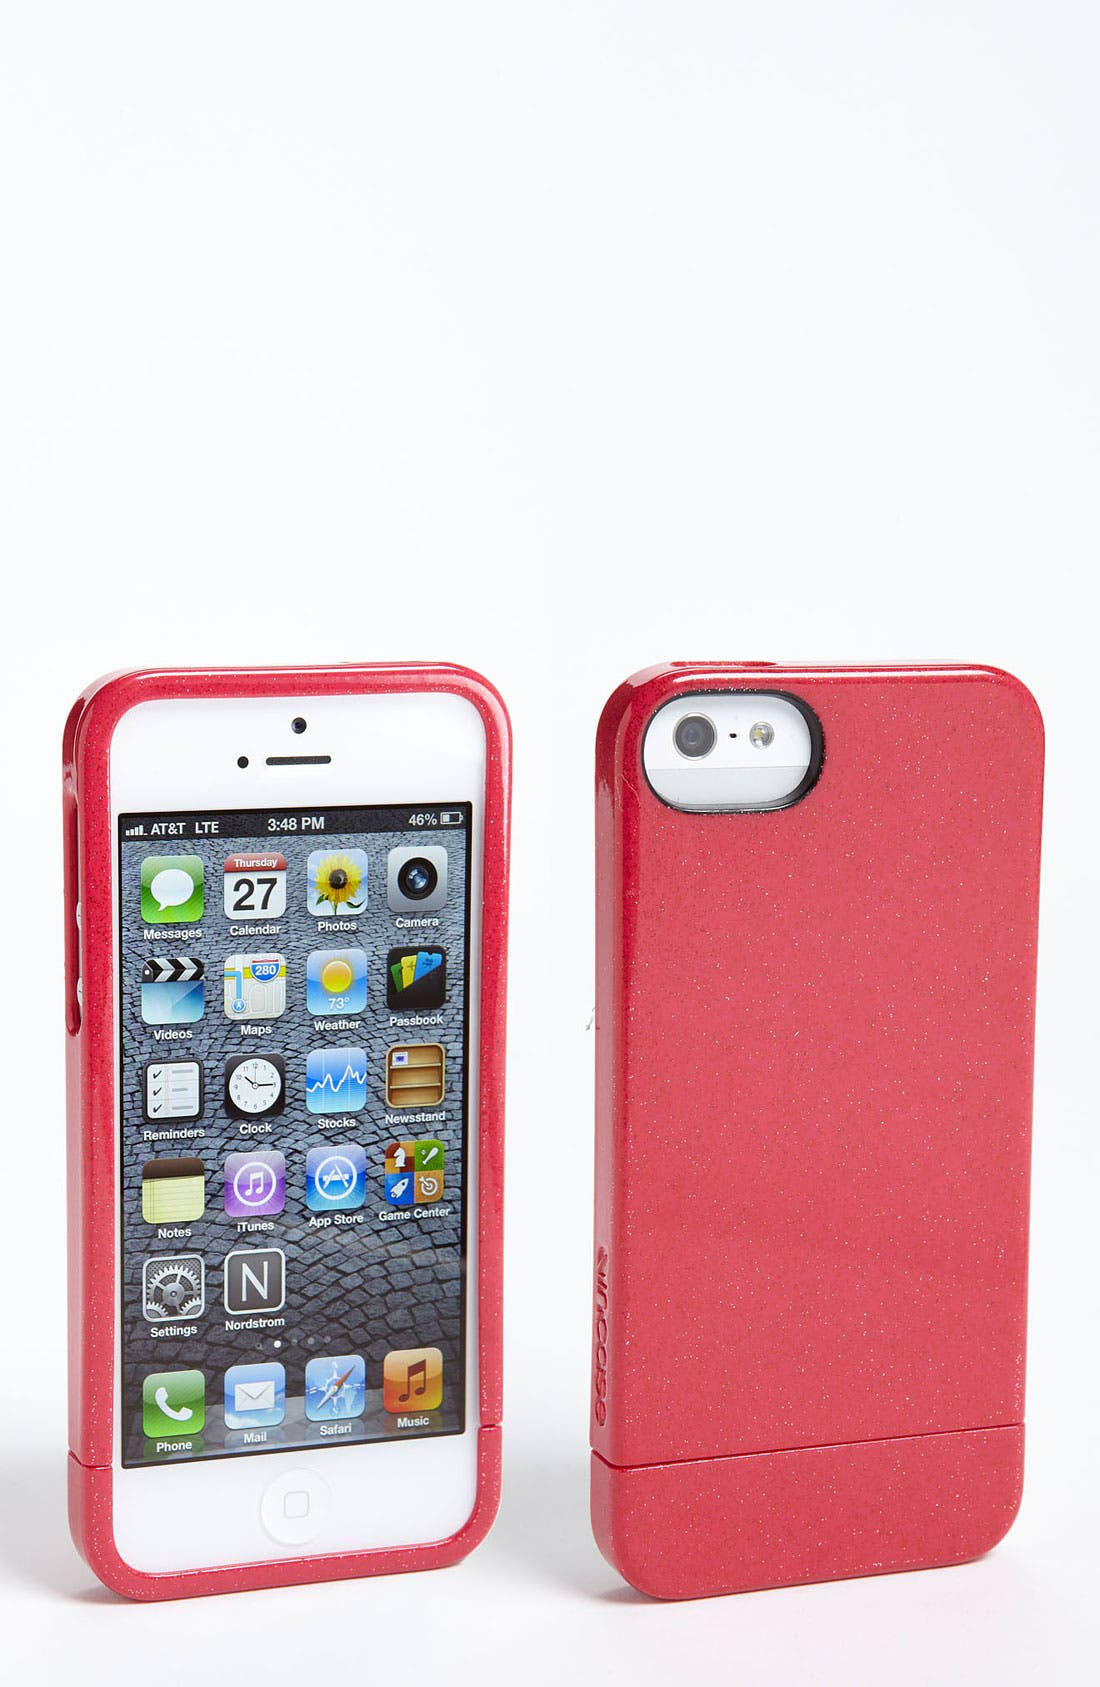 Main Image - Incase Designs 'Crystal' iPhone 5 Slider Case